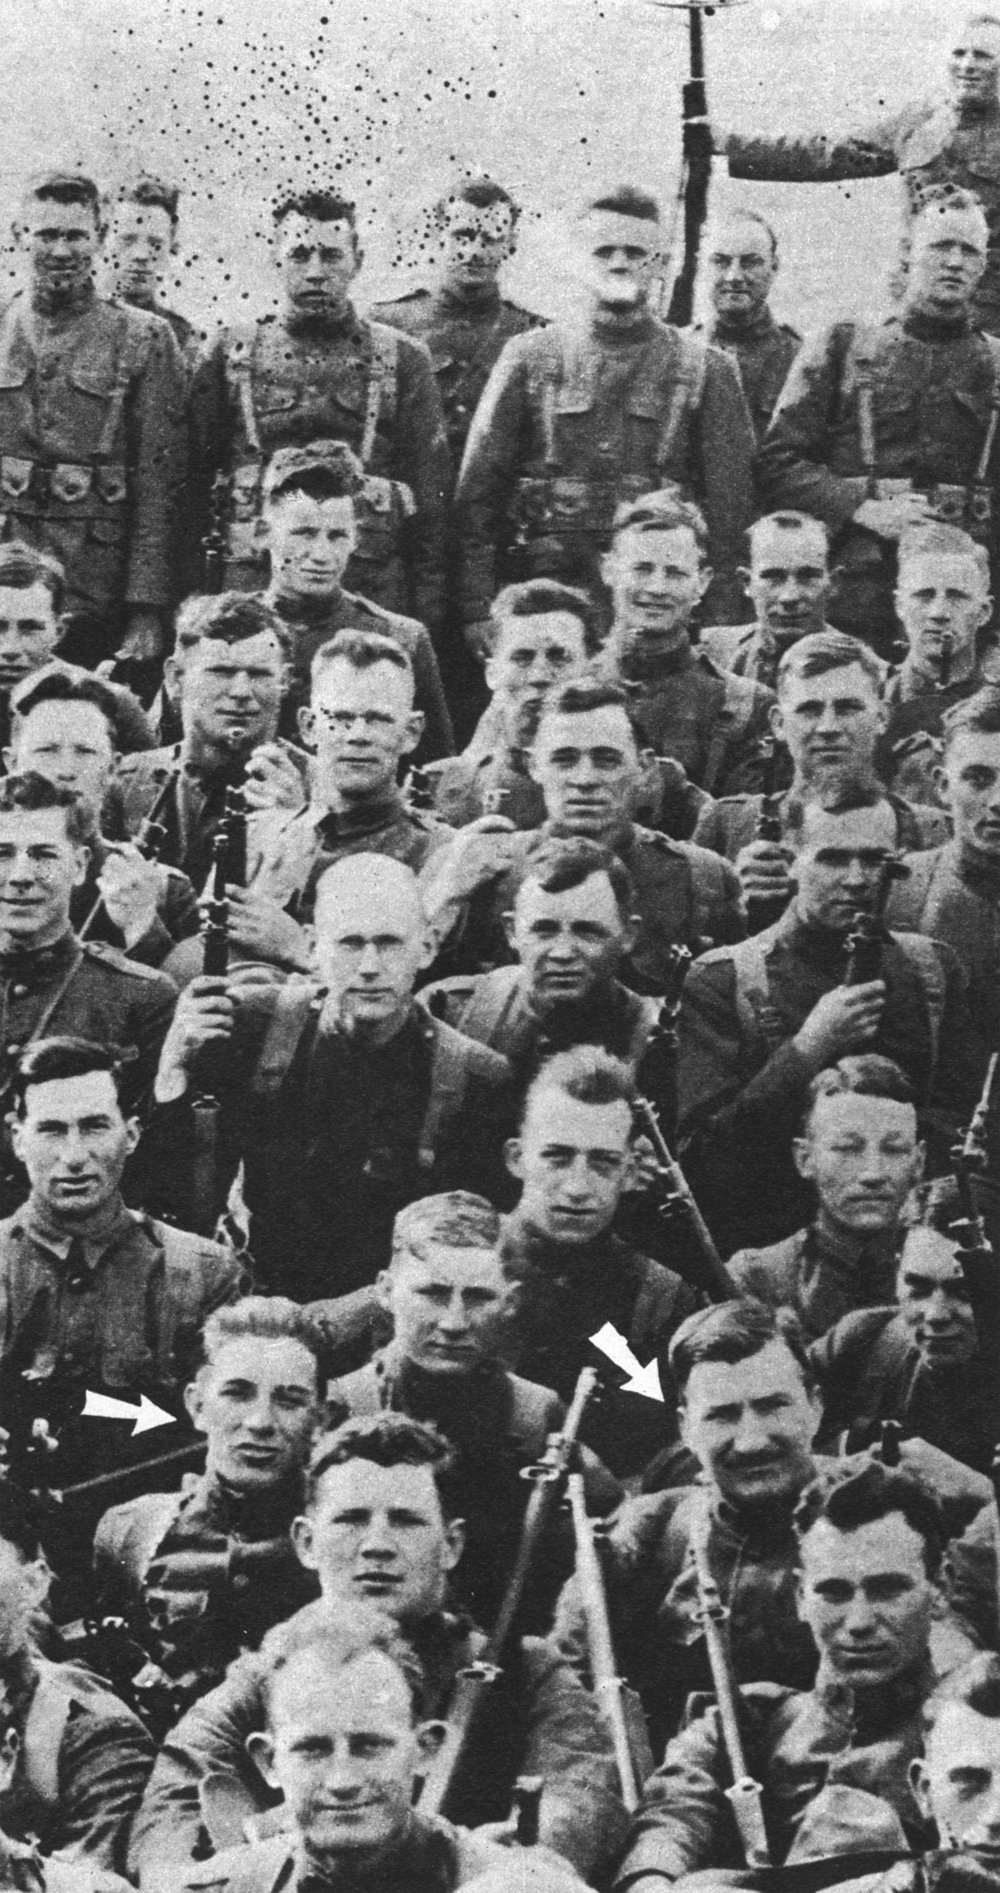 Henry Gunther with fellow soldiers. He is pictured at the right arrow.